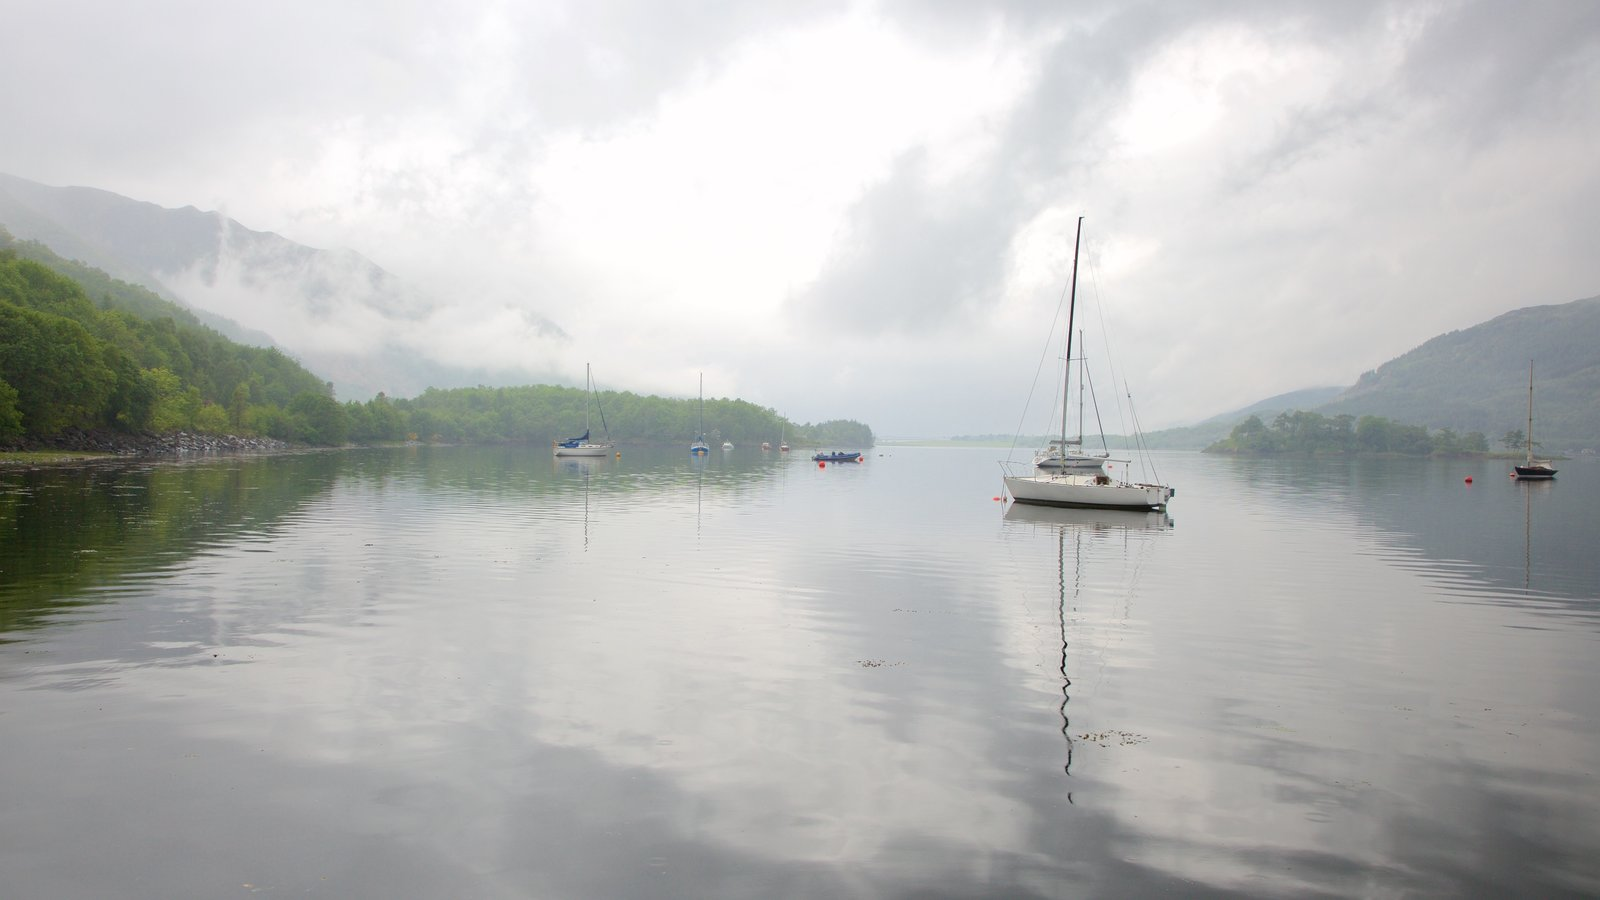 Glencoe featuring boating, a lake or waterhole and sailing